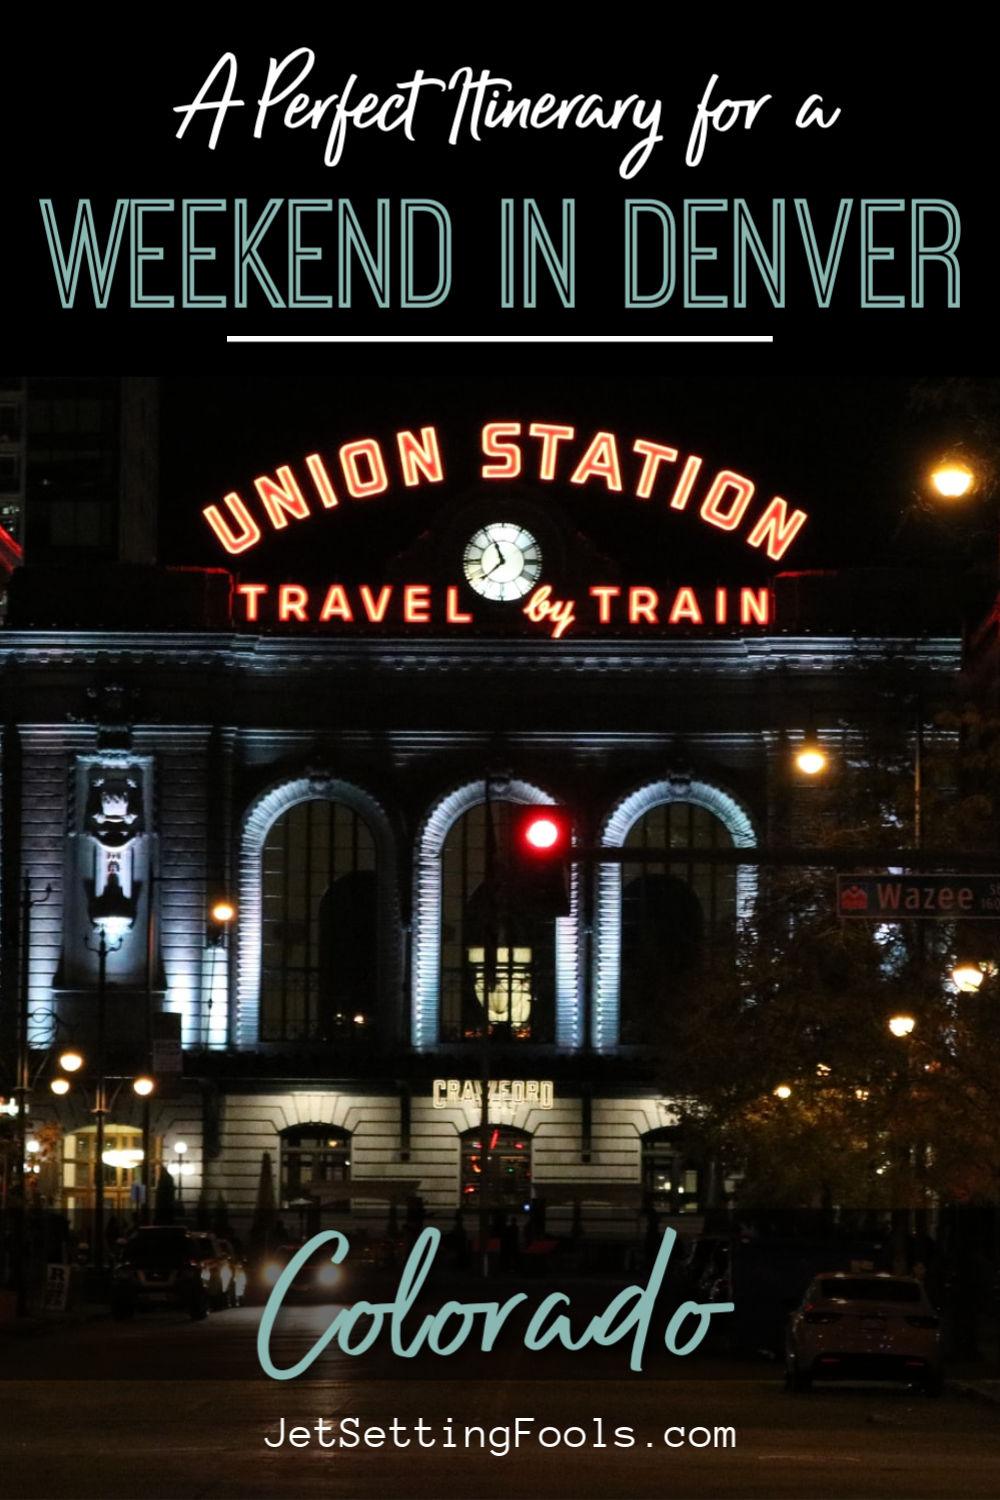 Weekend in Denver Itinerary by JetSettingFools.com